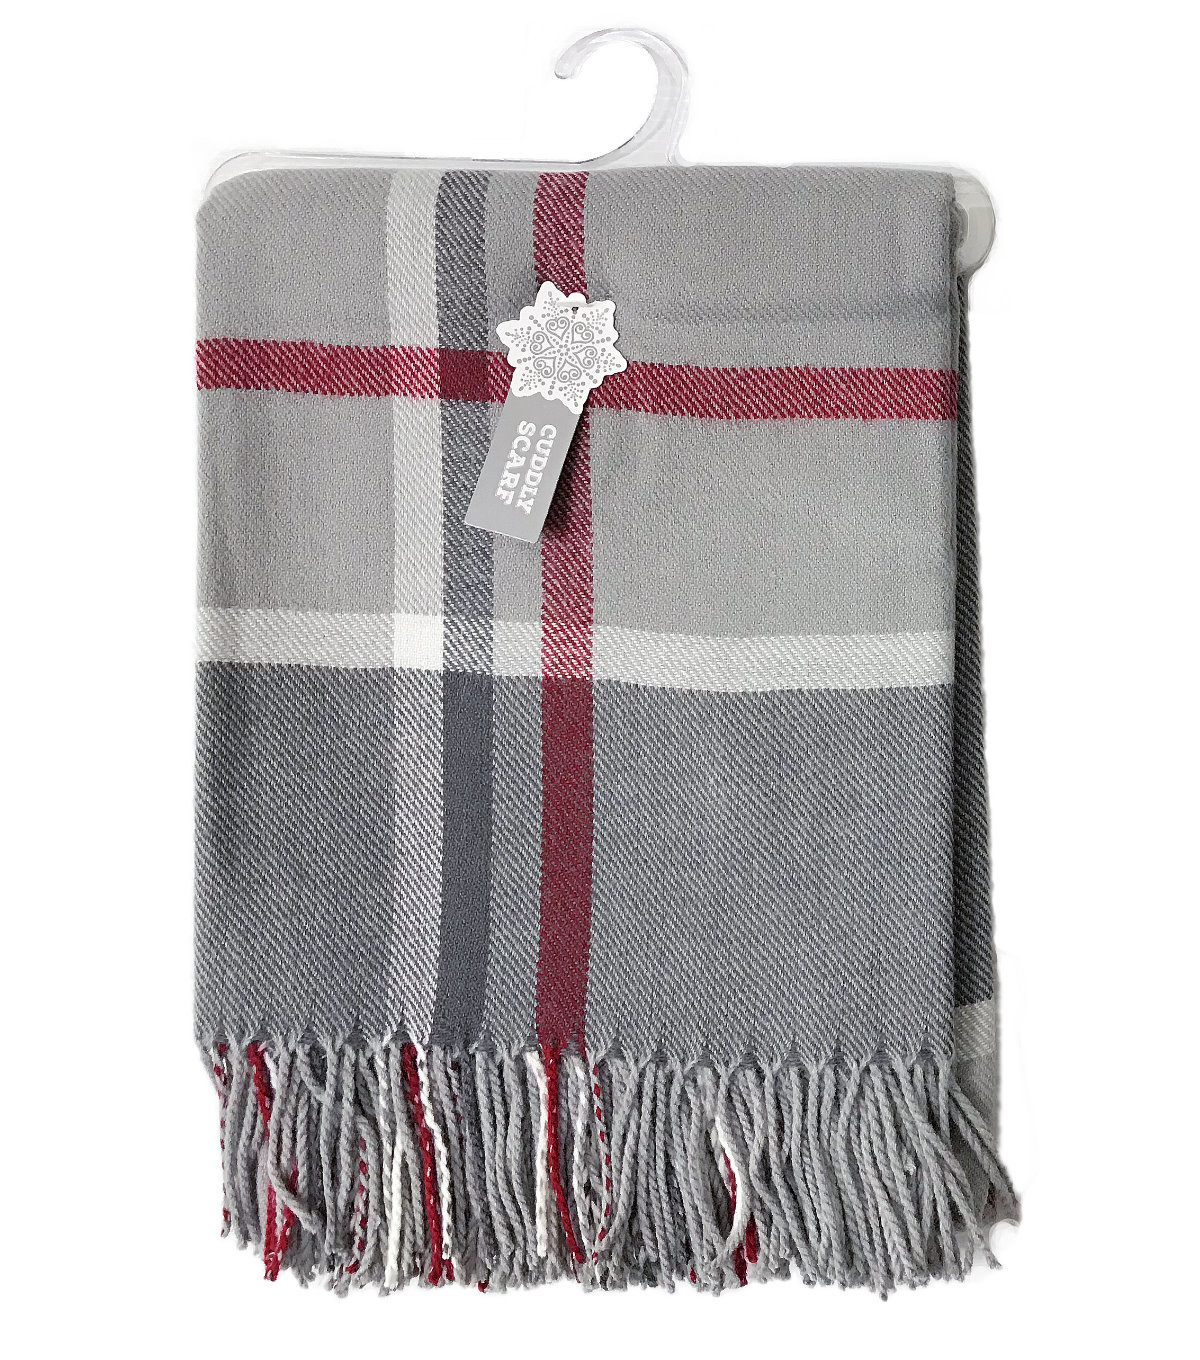 db3cfe1a8d03e Christmas Cuddly Blanket Scarf-Gray, White & Red Plaid | JOANN